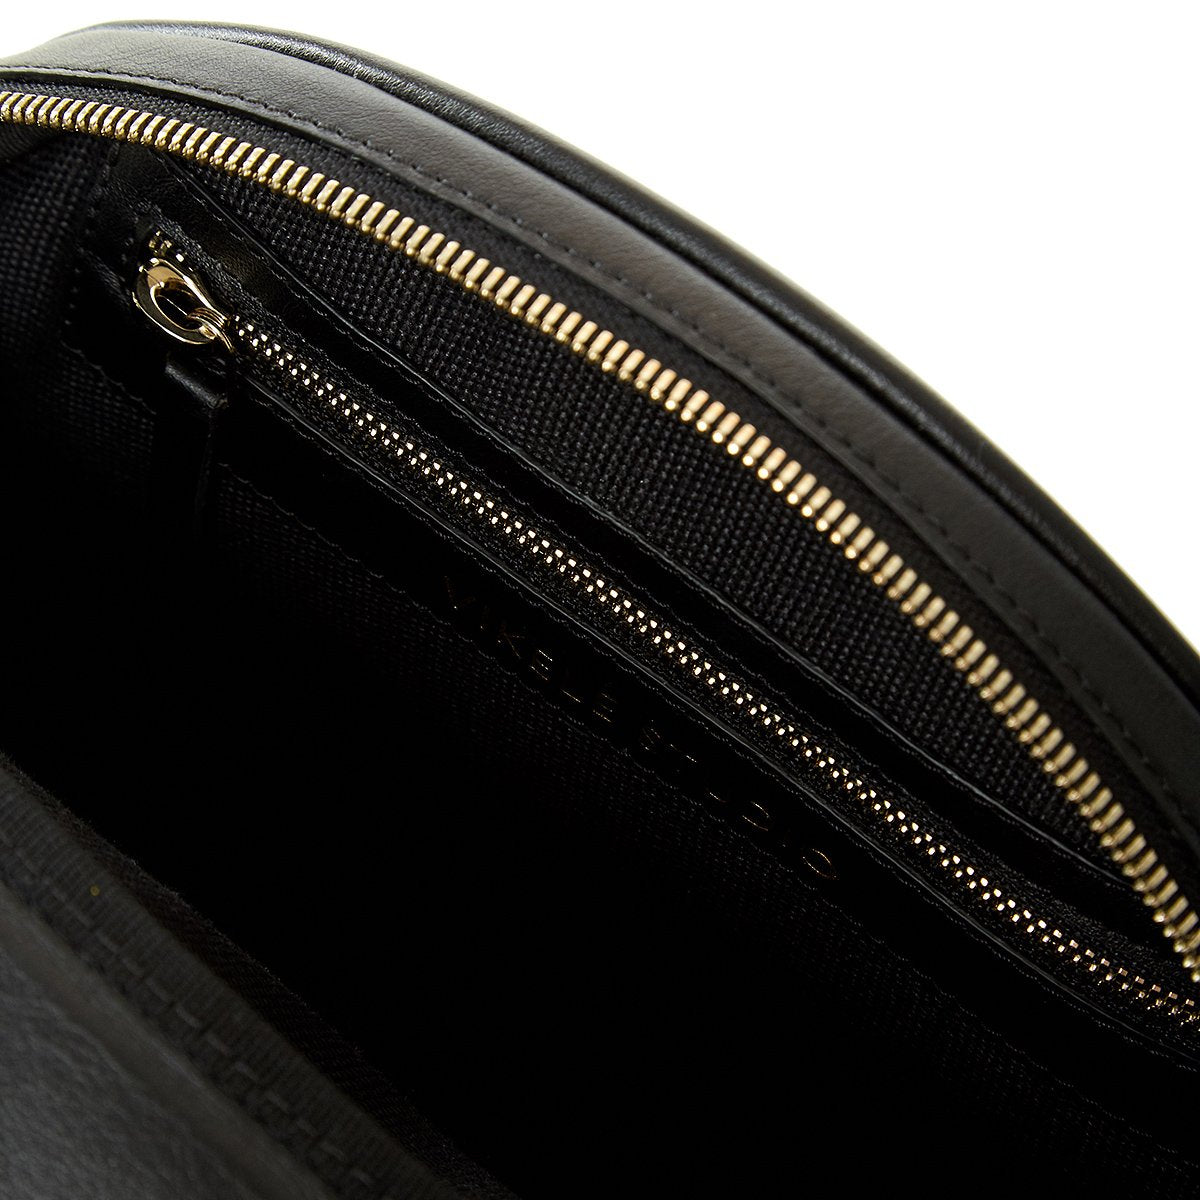 ETTE BAG BLACK